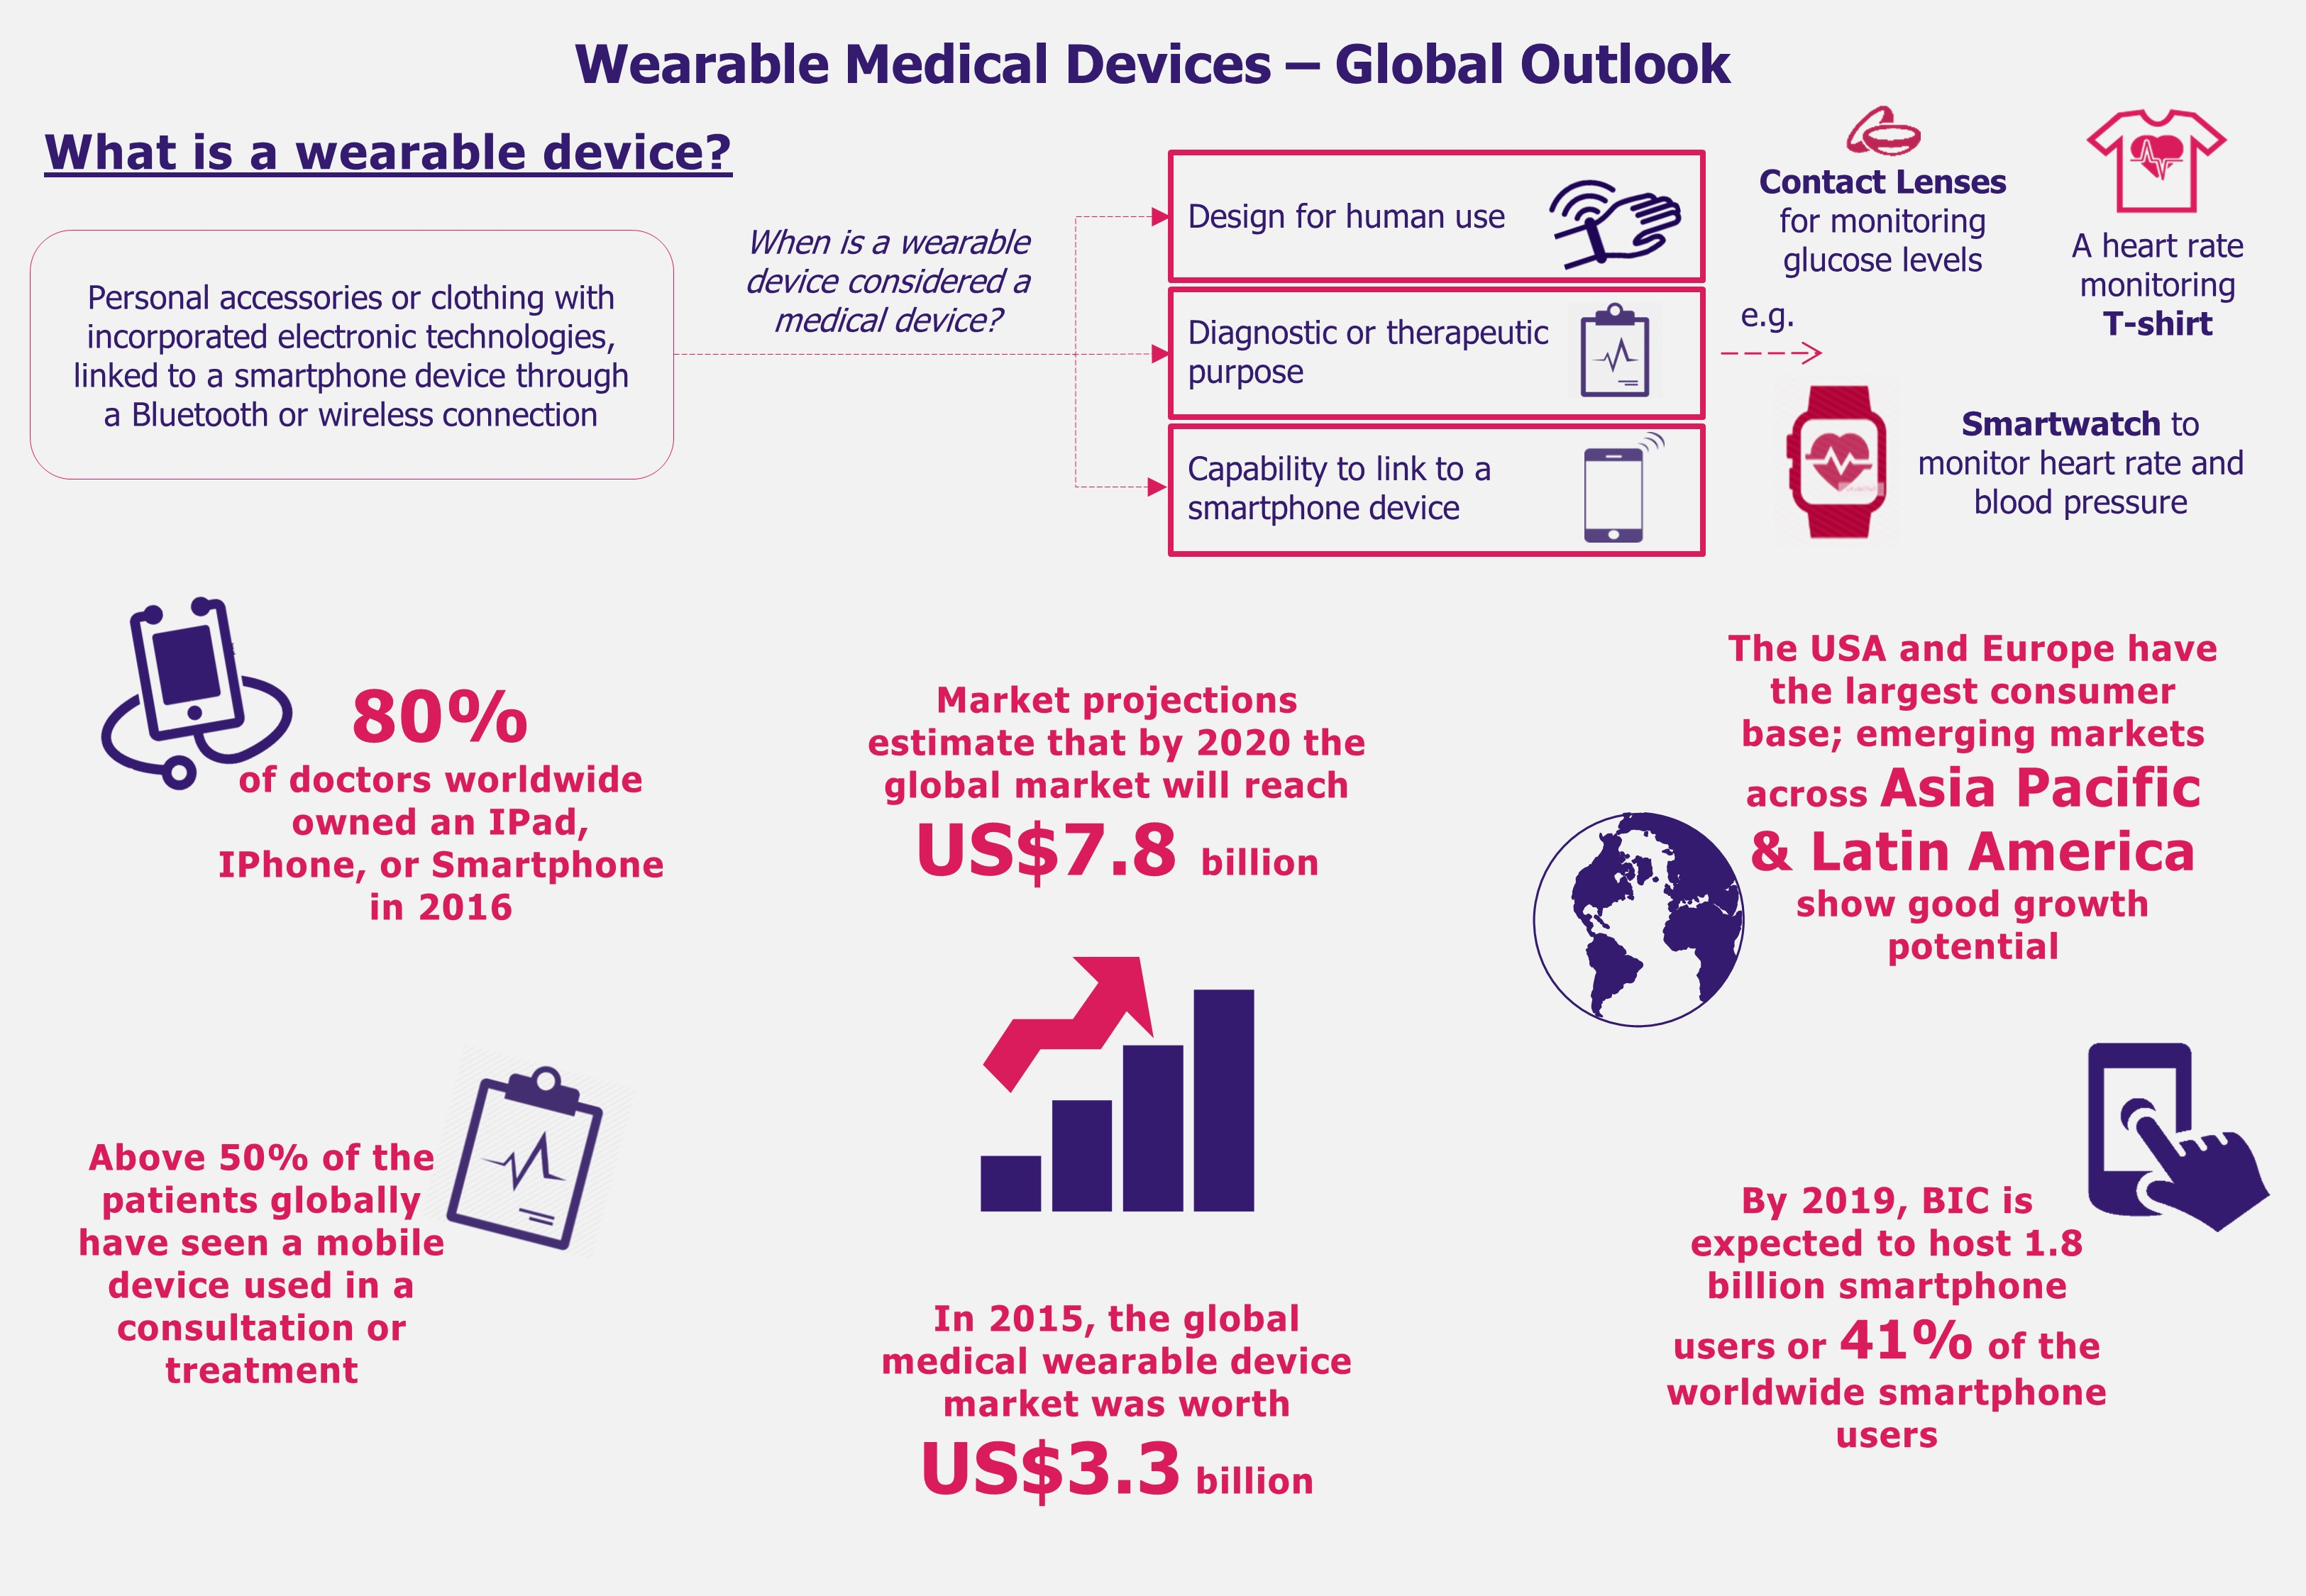 Wearable Medical Devices in India, Brazil, and China-Global Outlook